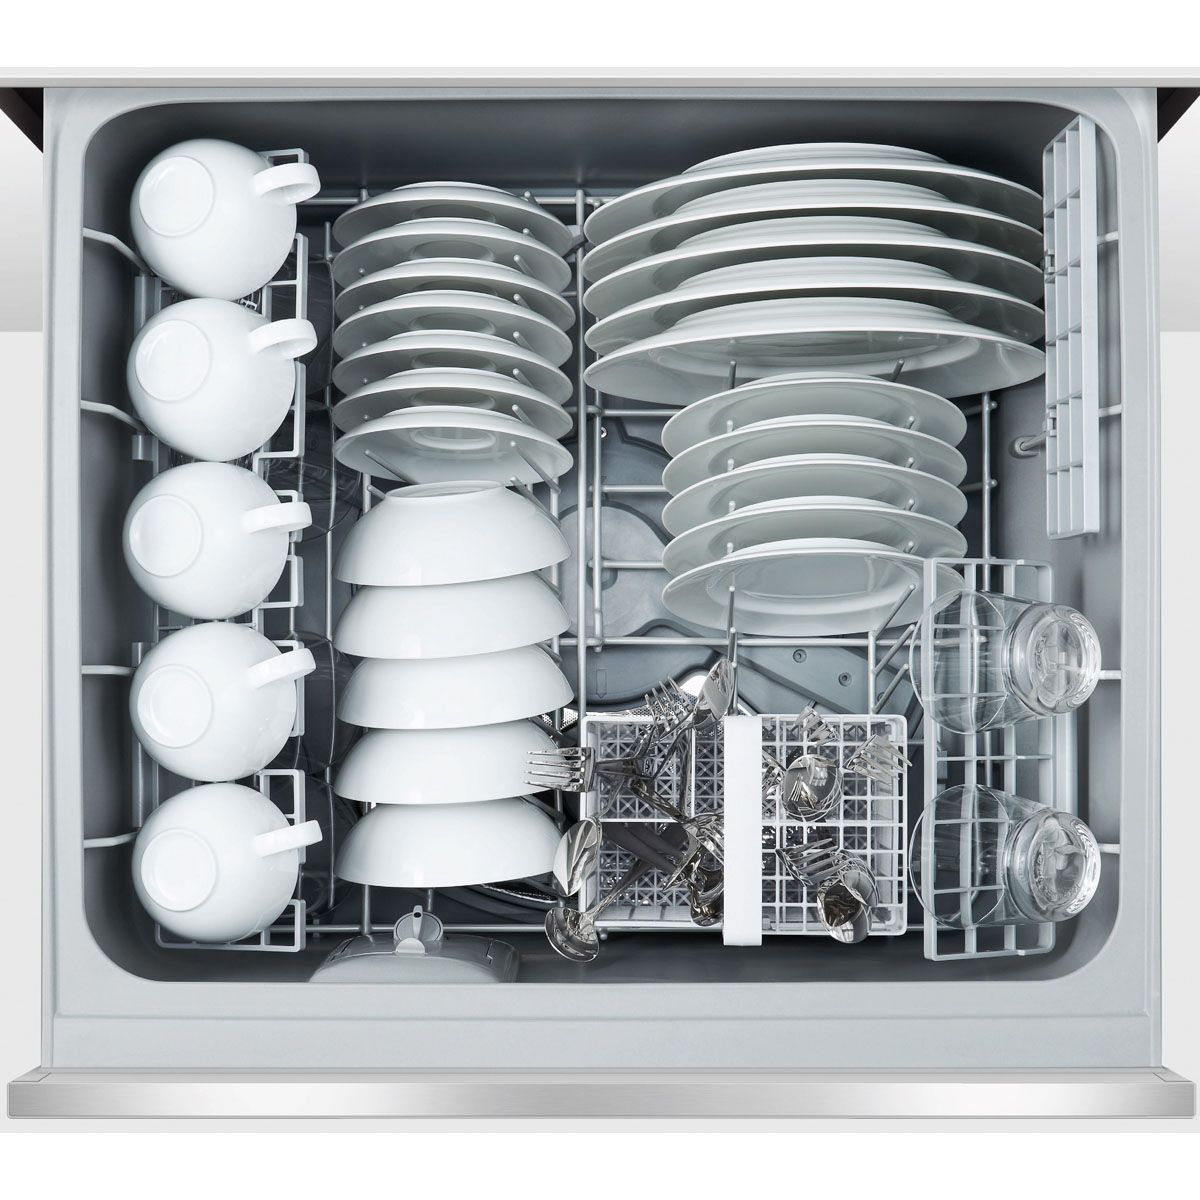 Fisher paykel dd60dcx9 dishdrawer double dishwasher home clearance - Fisher paykel dishwasher drawer reviews ...